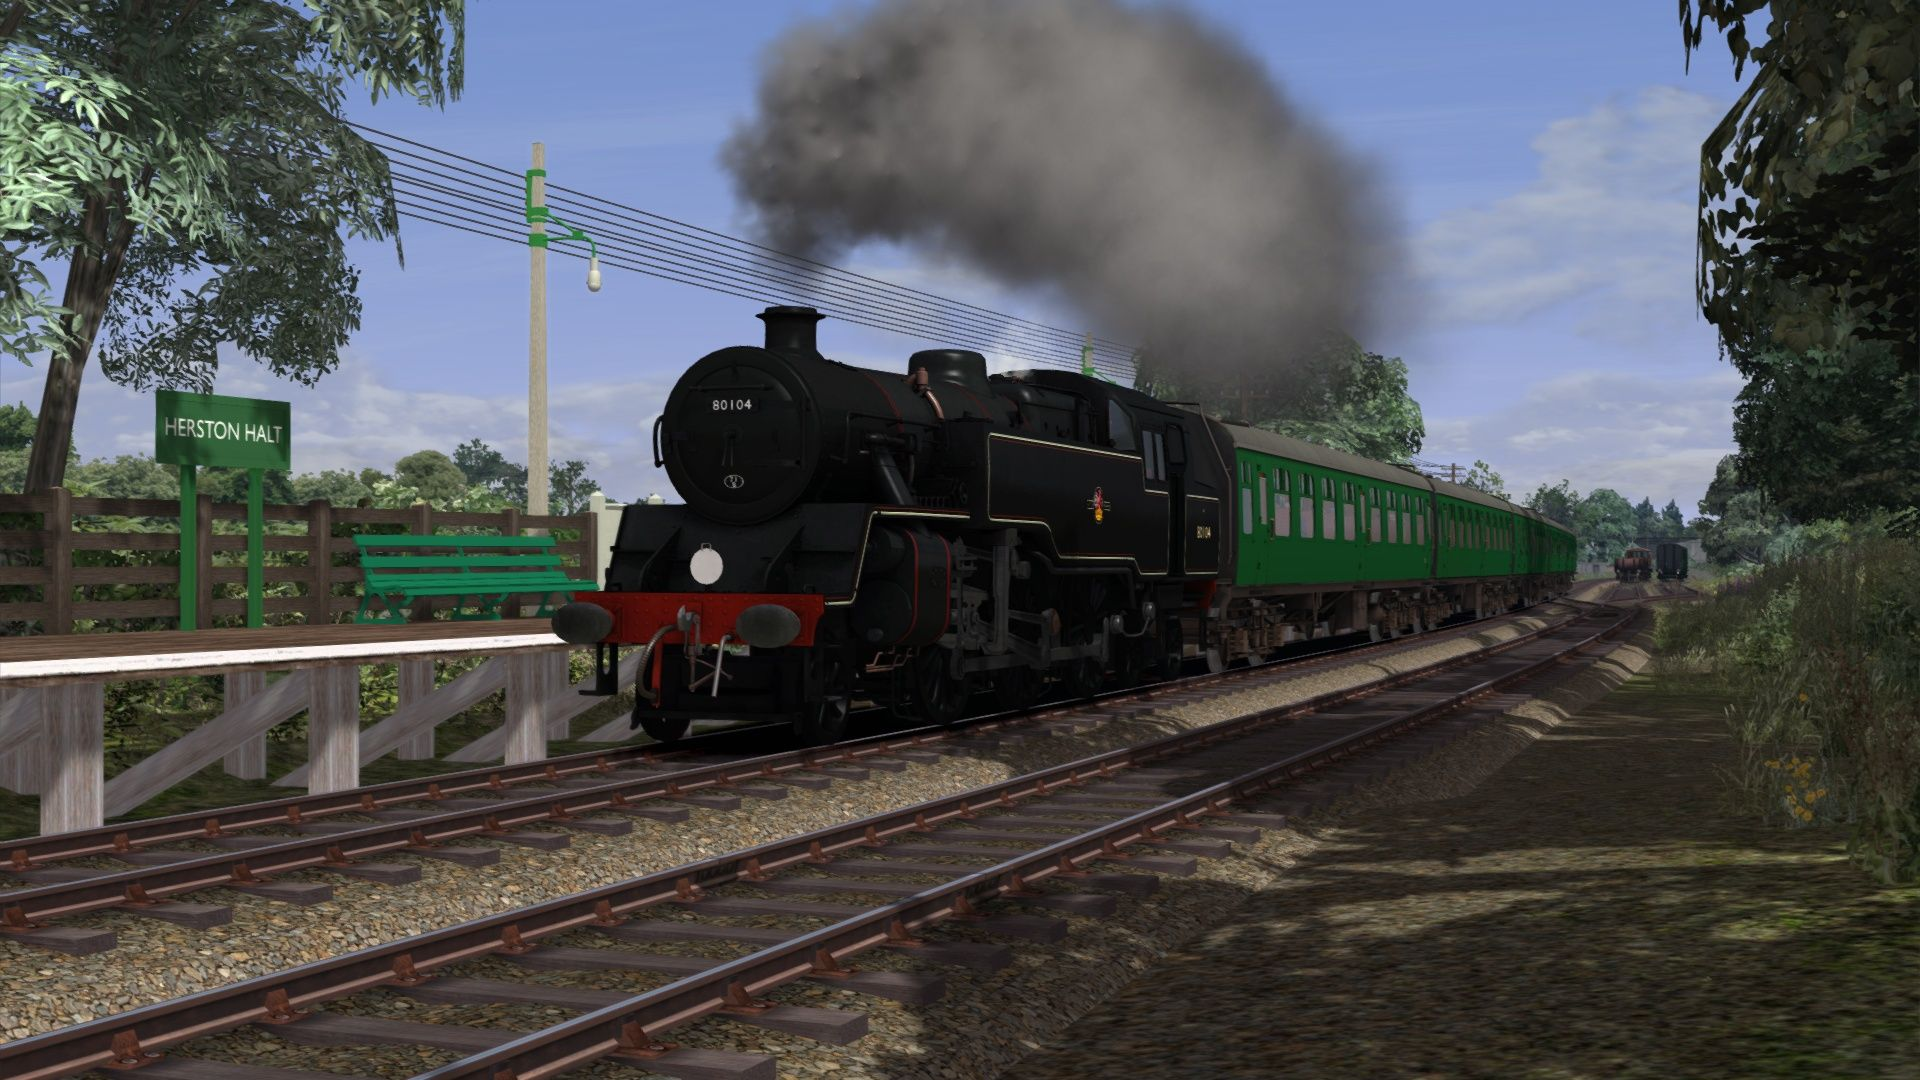 Screenshot_Swanage Railway_50.61303--1.98076_16-06-02